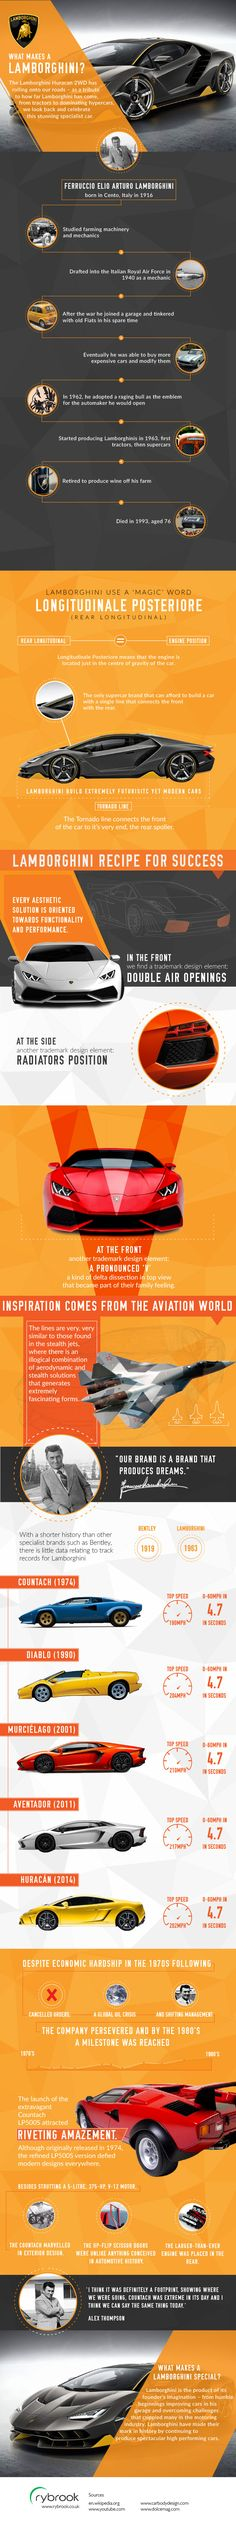 Lamborghini have produced many of the most futuristic, high-performance and most stunningly designed super cars the world has ever seen. From the spine tingling speed of the Aventador, to the impressive track credentials of the Huracan, Lamborghini continuously manage to stun and amaze. The following infographic by Rybrook Specialist Cars traces the history, achievement and performance of this incredible Italian car brand, from the passion of Ferrucio Lamborghini to the fighter jet design…